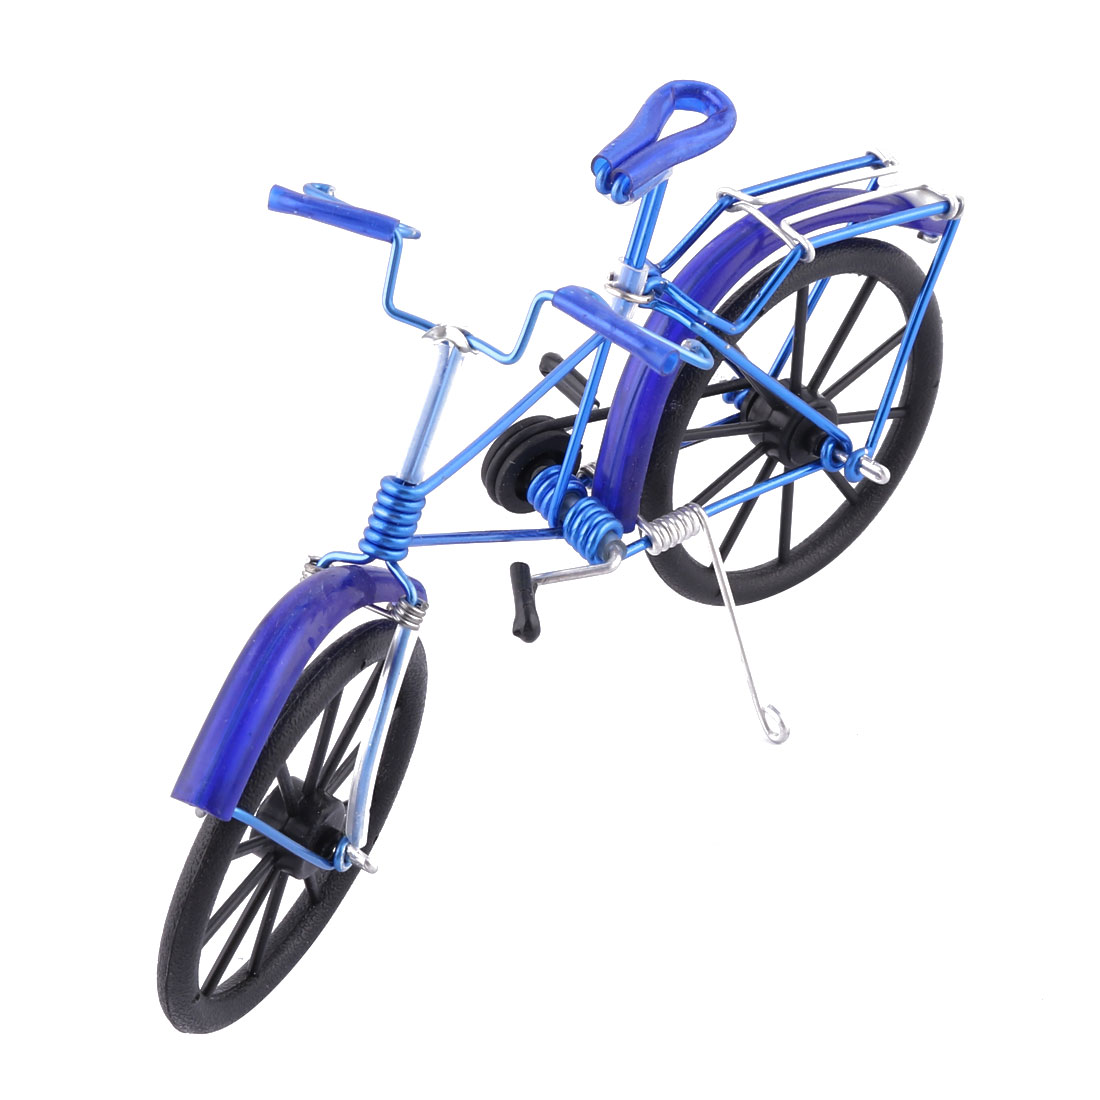 Aluminium Alloy Vintage Style Desk Decor Craft Toy Gift Bicycle Model Royal Blue